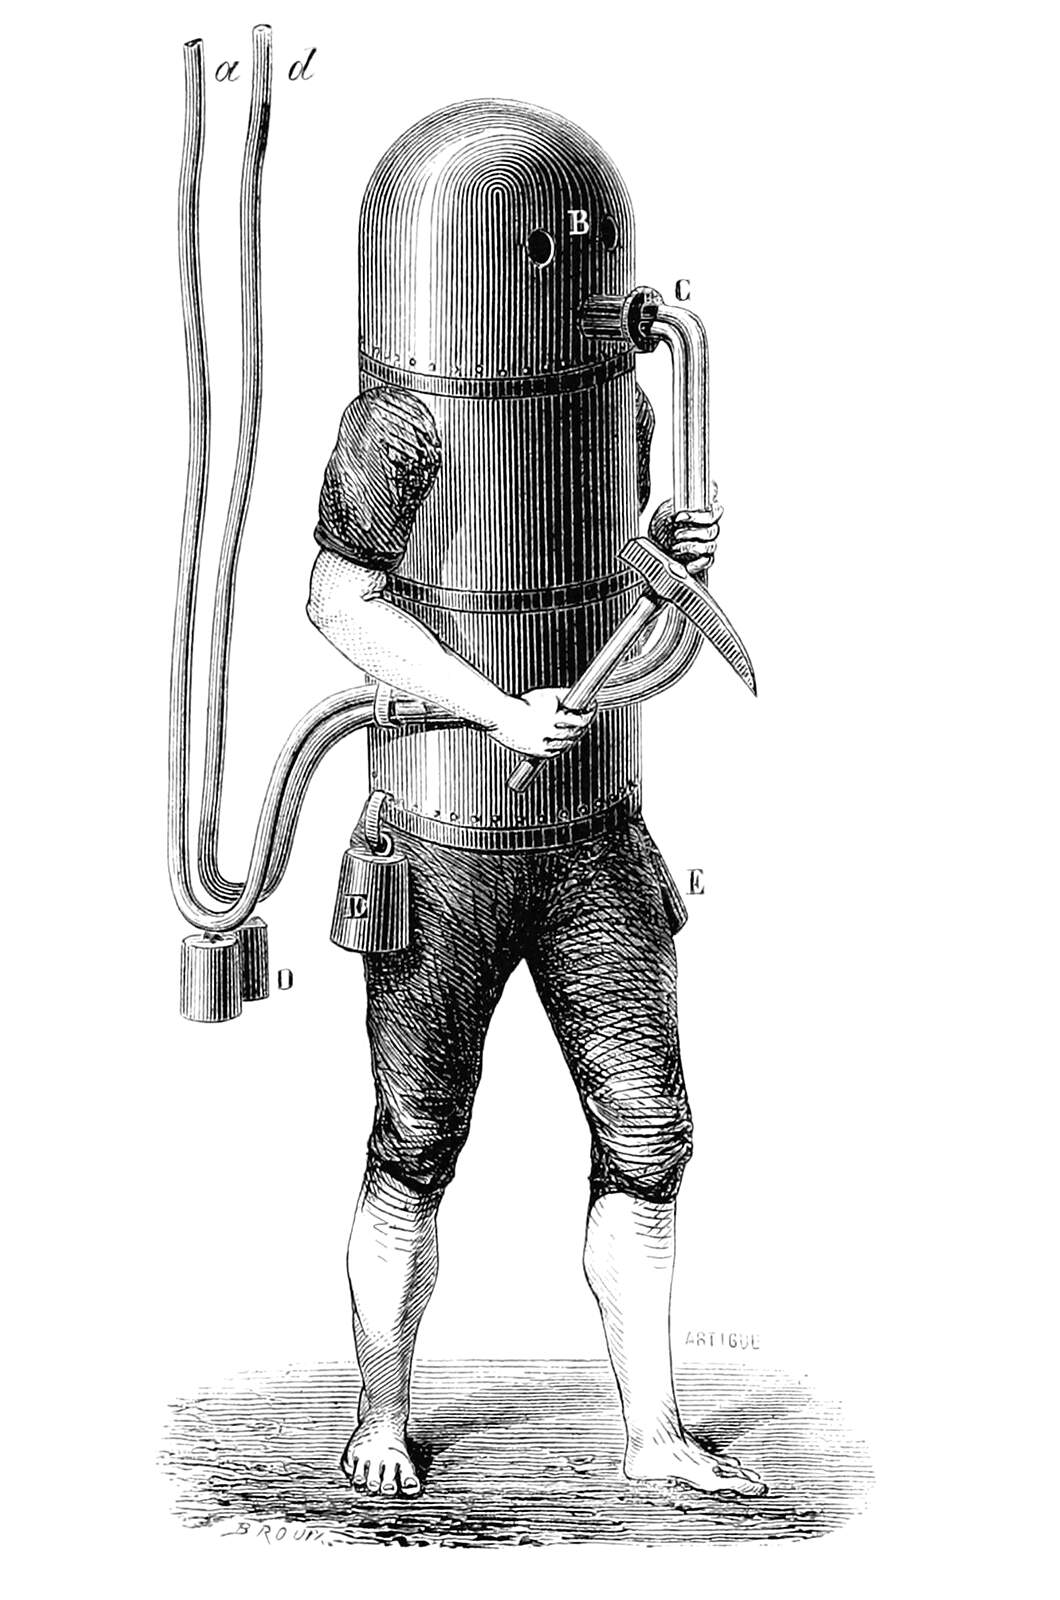 A person in a very strange underwater suit